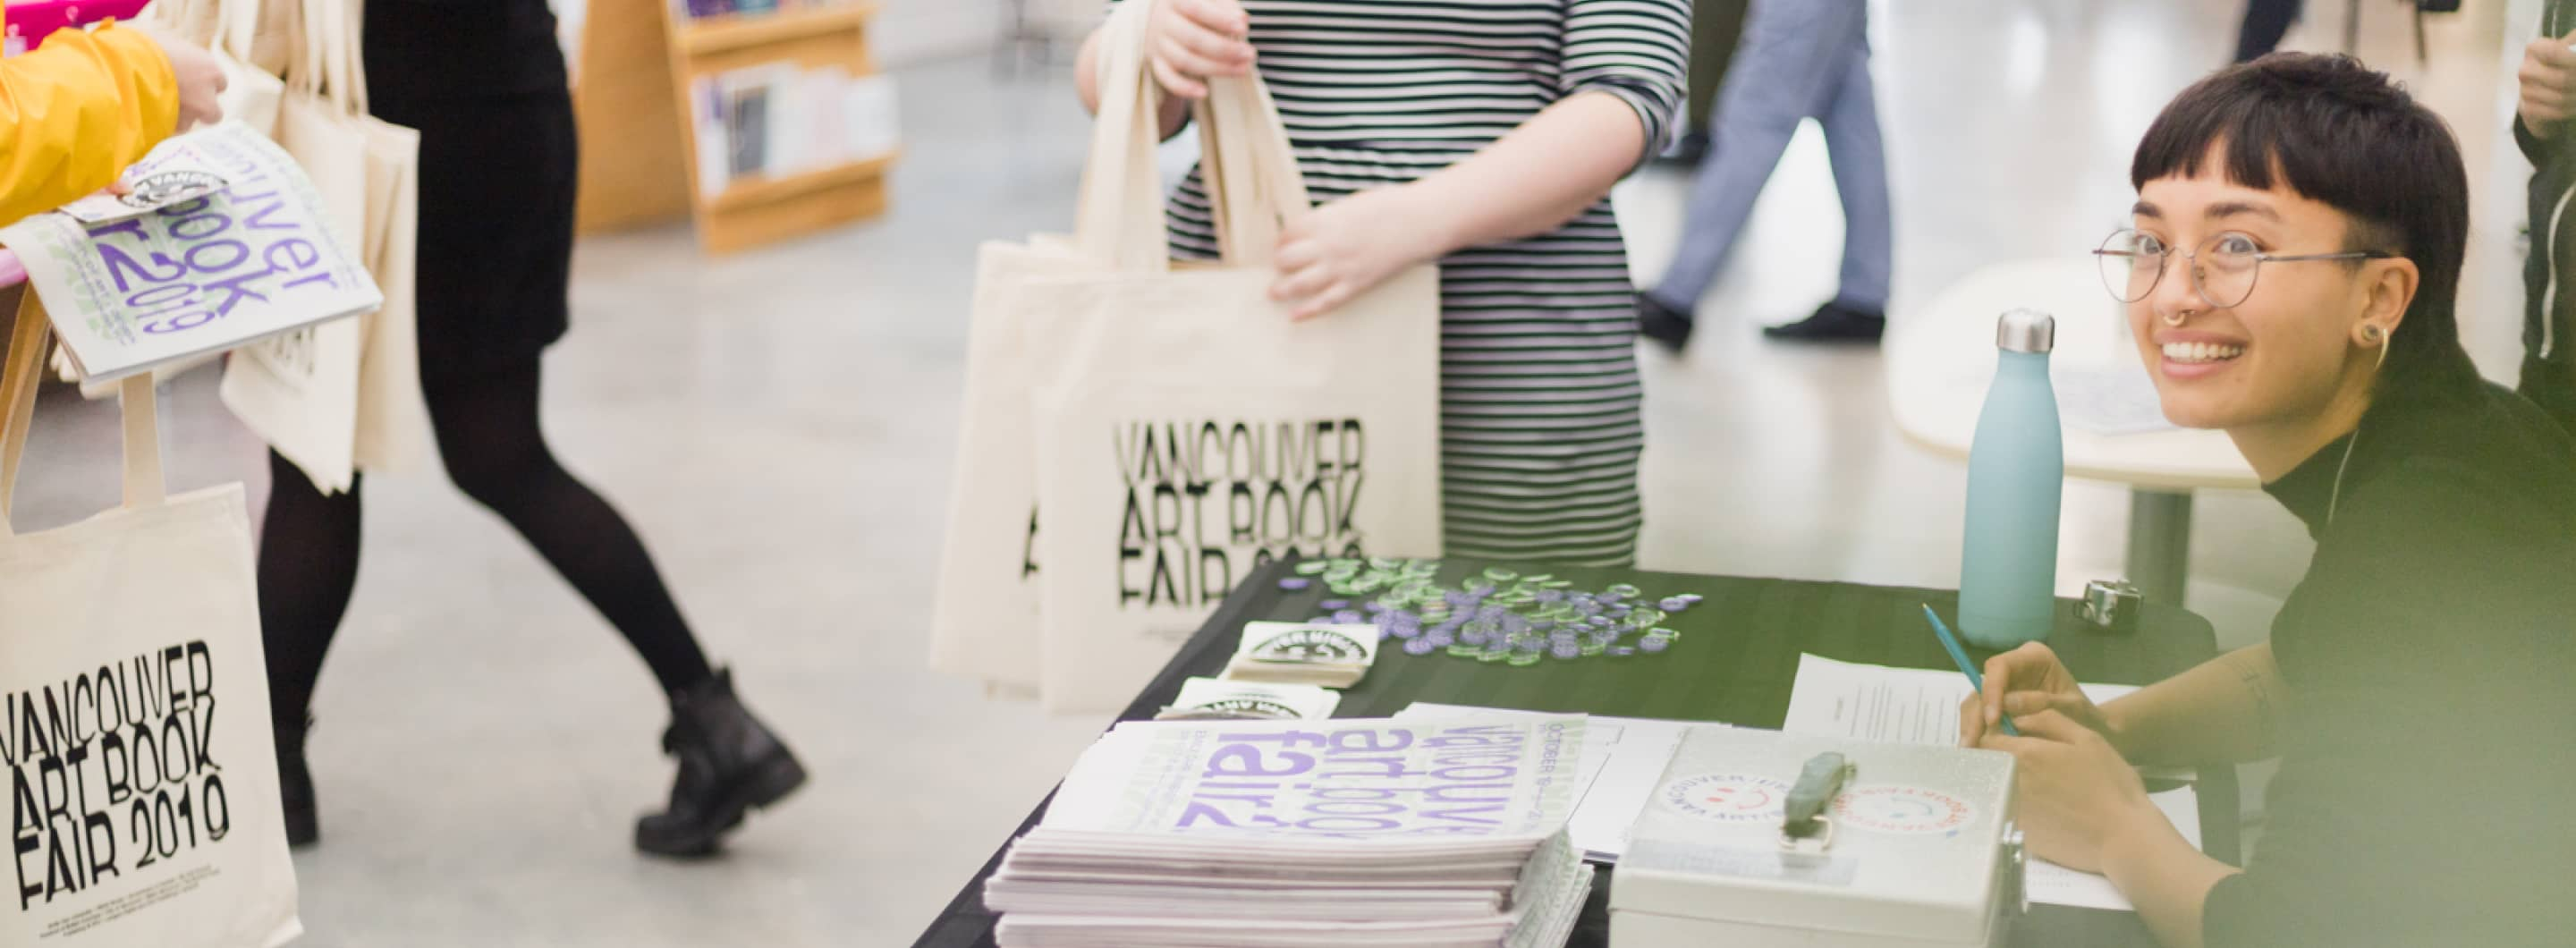 Photograph from VABF 2019 of the Vancouver Art Book Fair membership table, volunteers give away free totes to attendees.